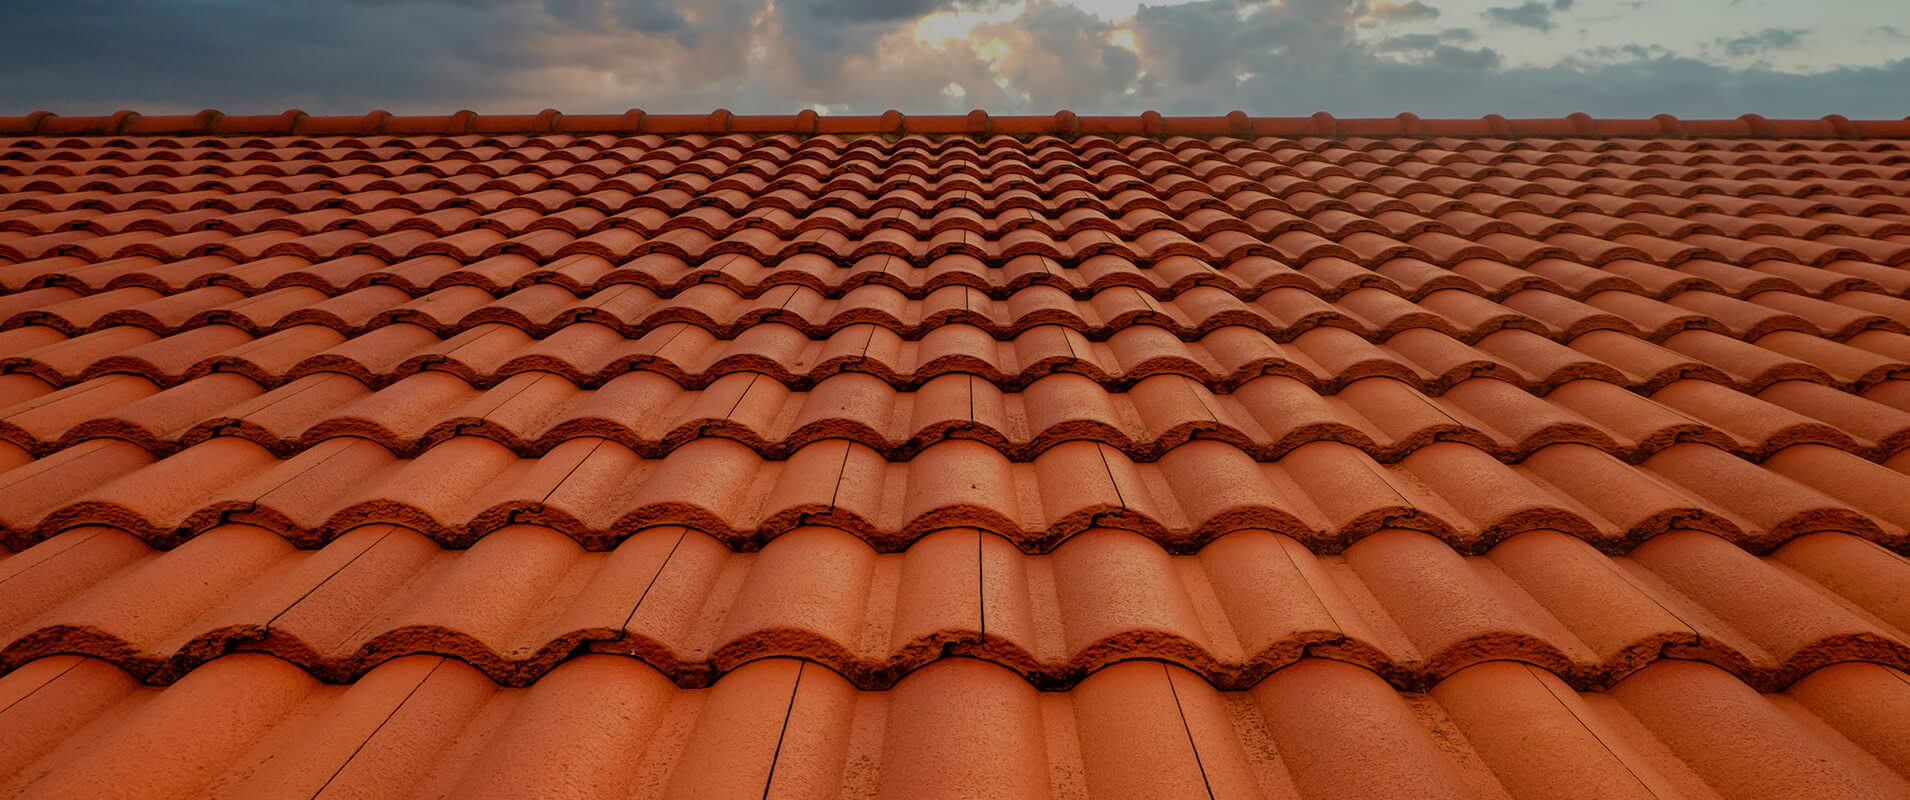 Arizona Tile Roof